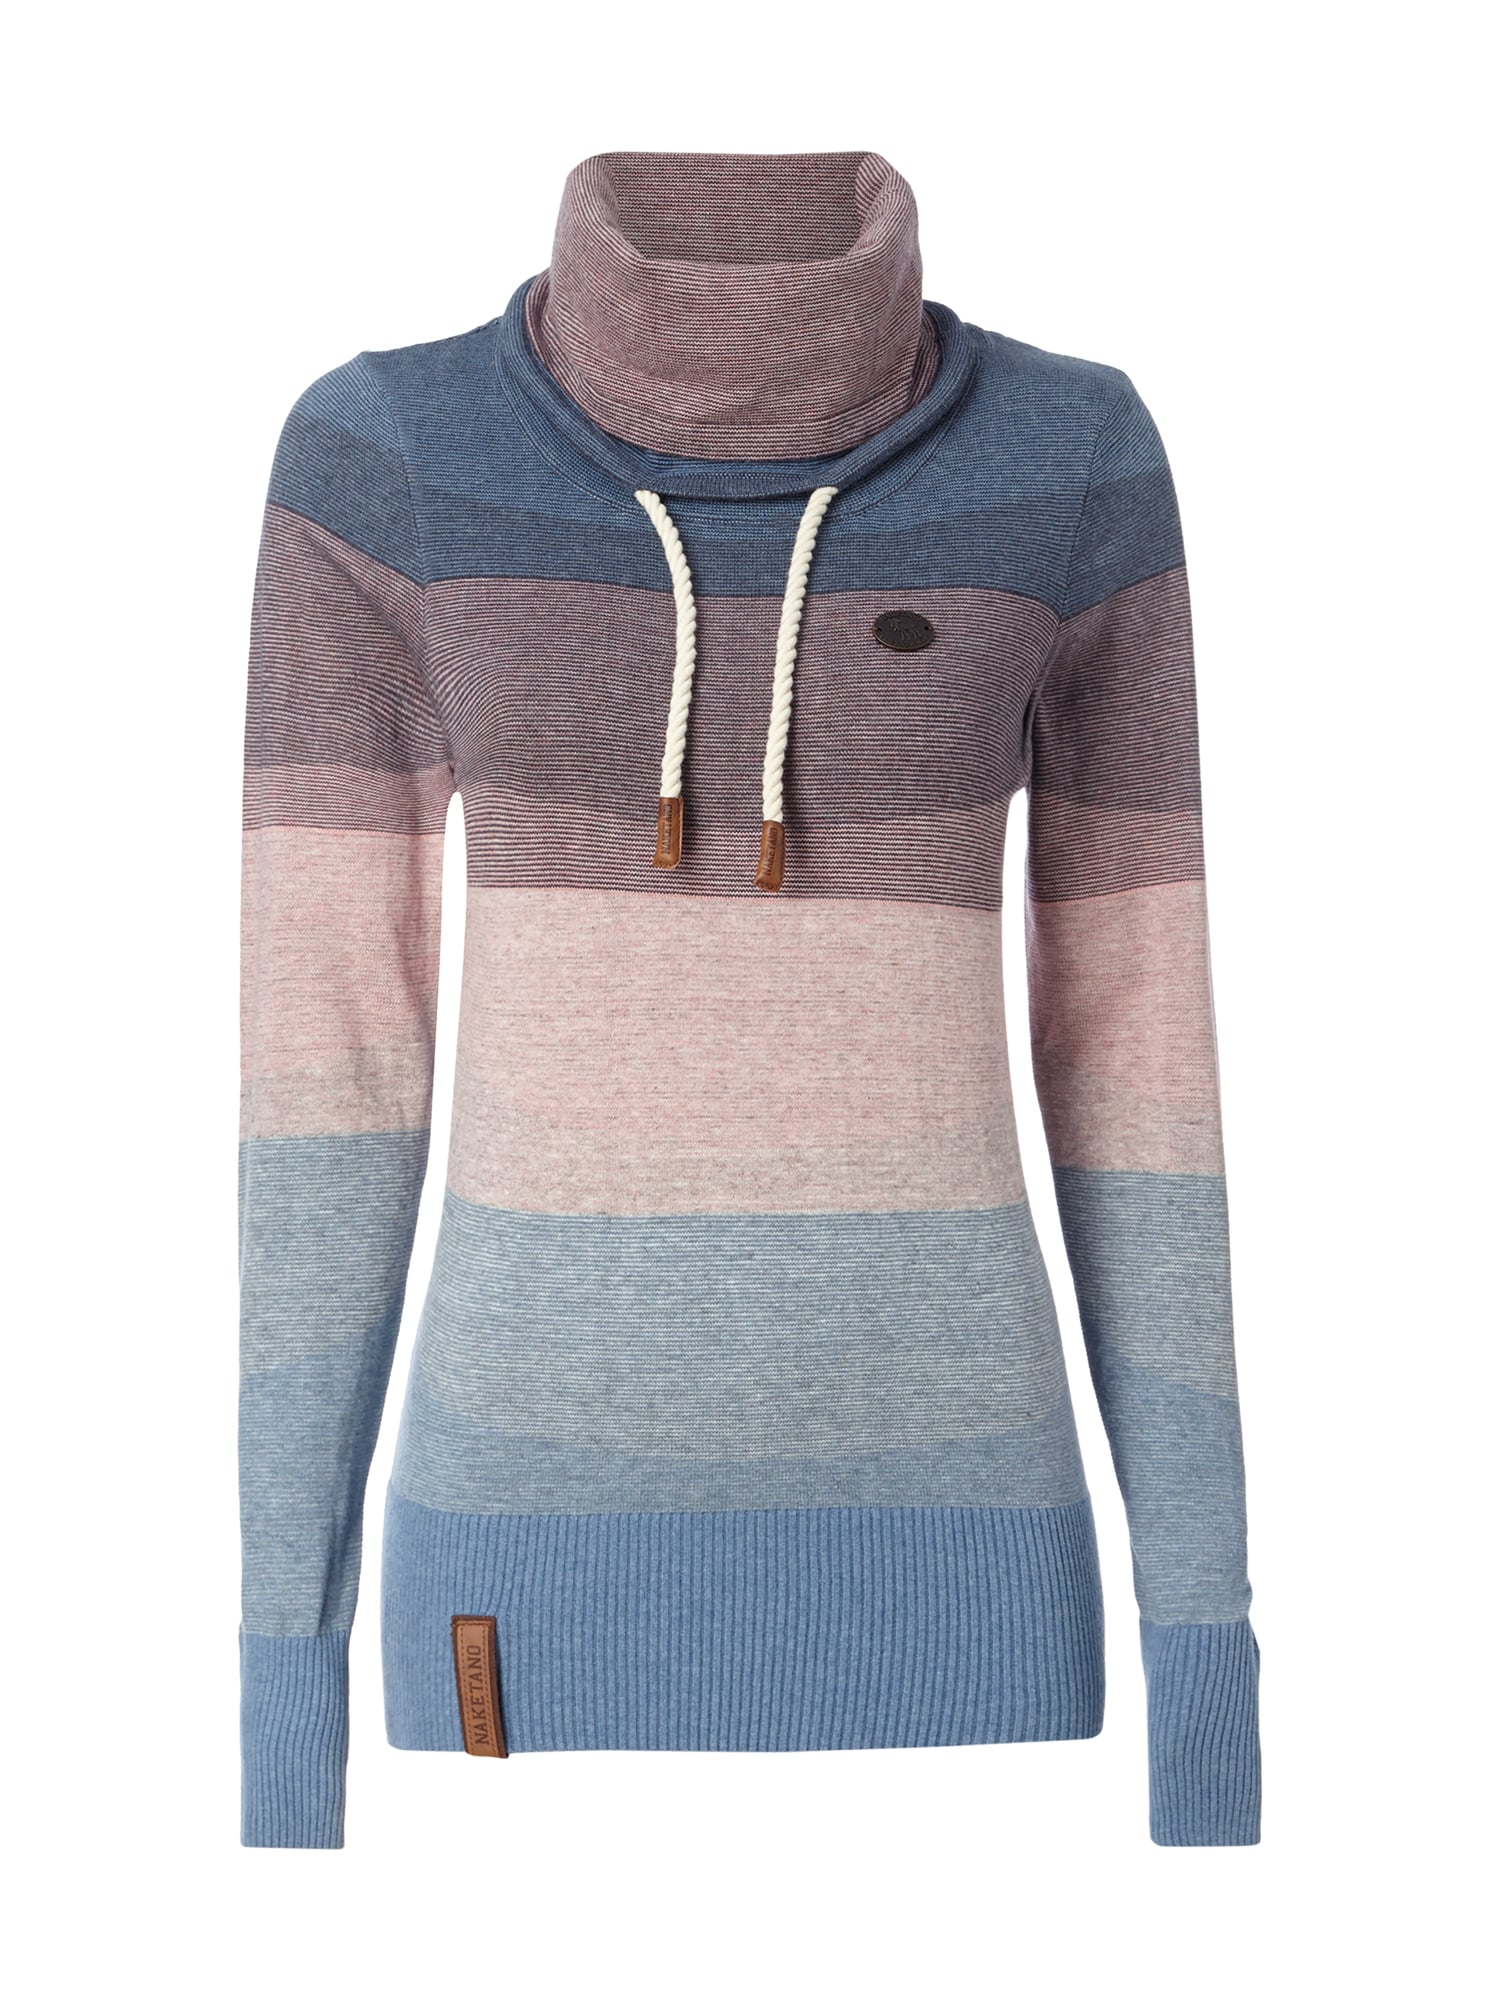 new style a3be9 f4fd5 Pullover 'JOAO SCHMIERAO I' mit Streifenmuster